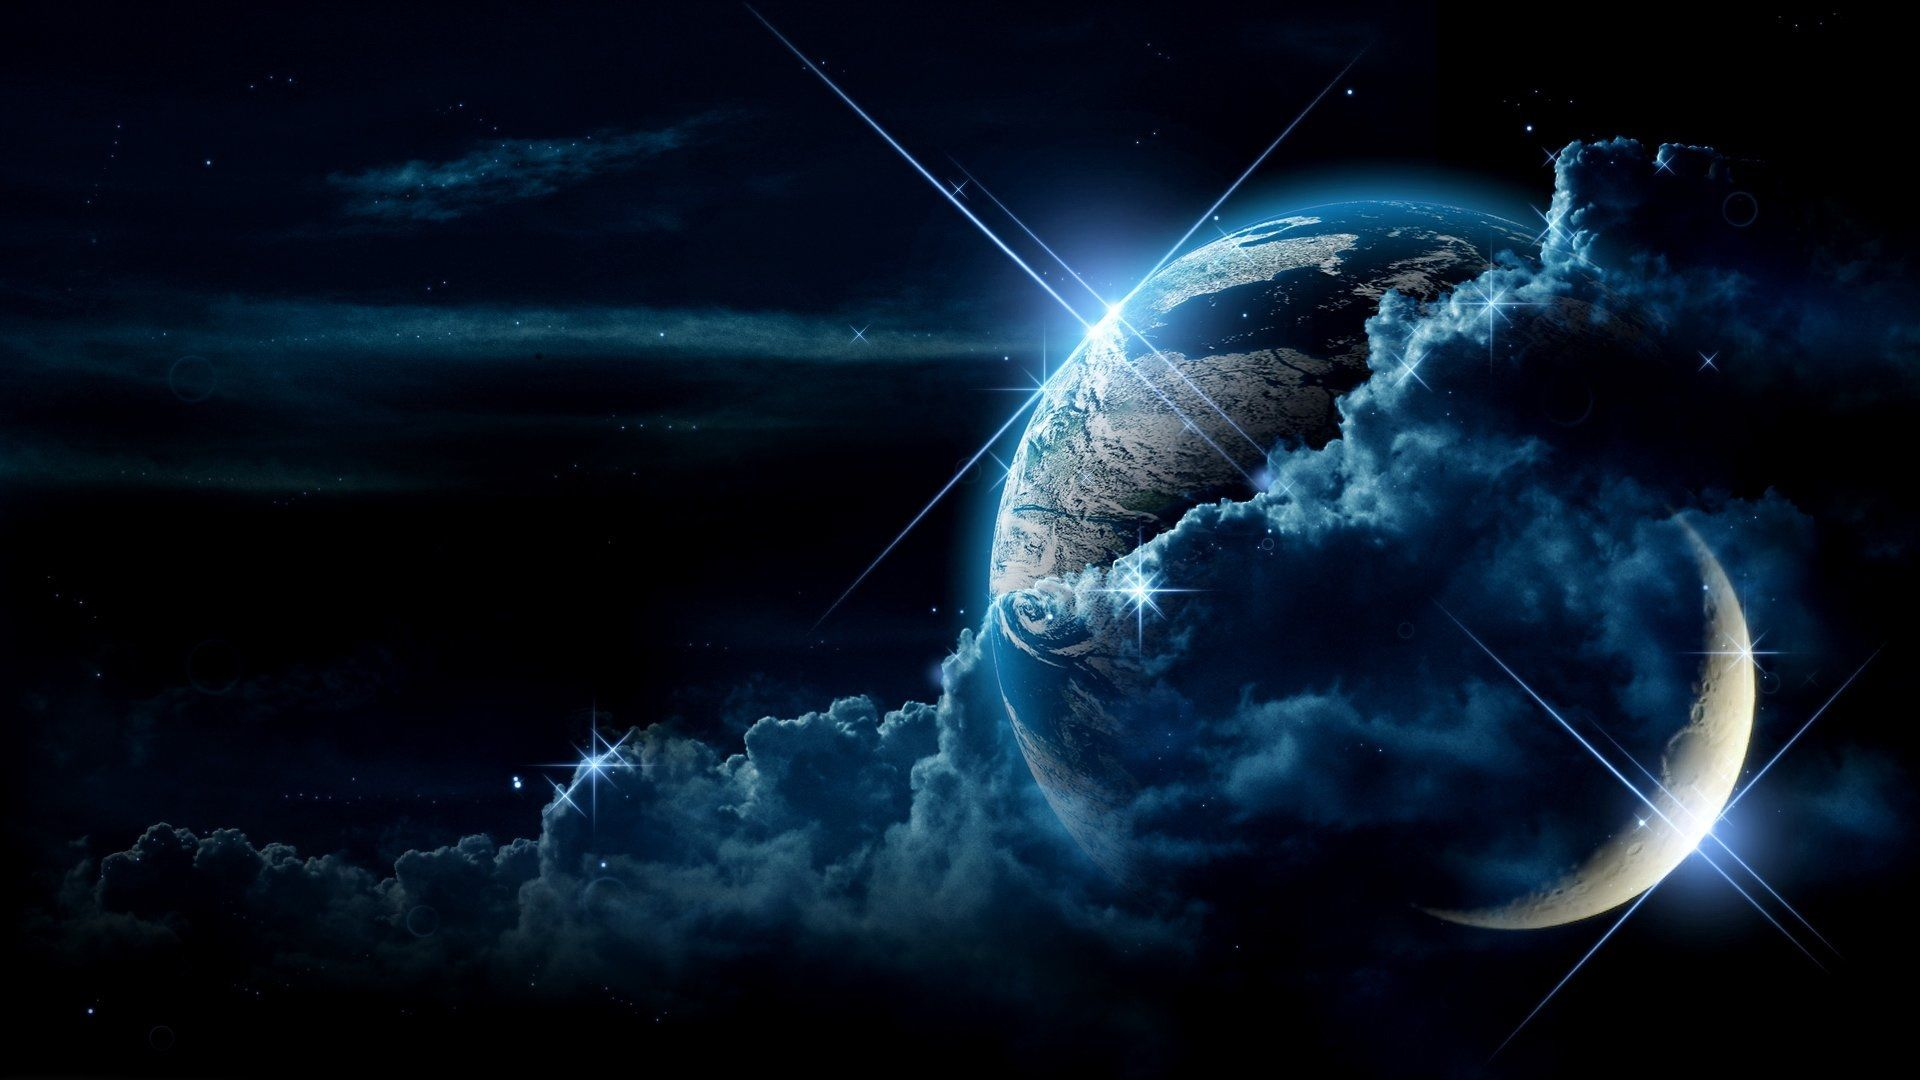 Outer Space Hd Desktop Wallpaper High Definition Fullscreen Wallpaper Space Cool Backgrounds Outer Space Wallpaper